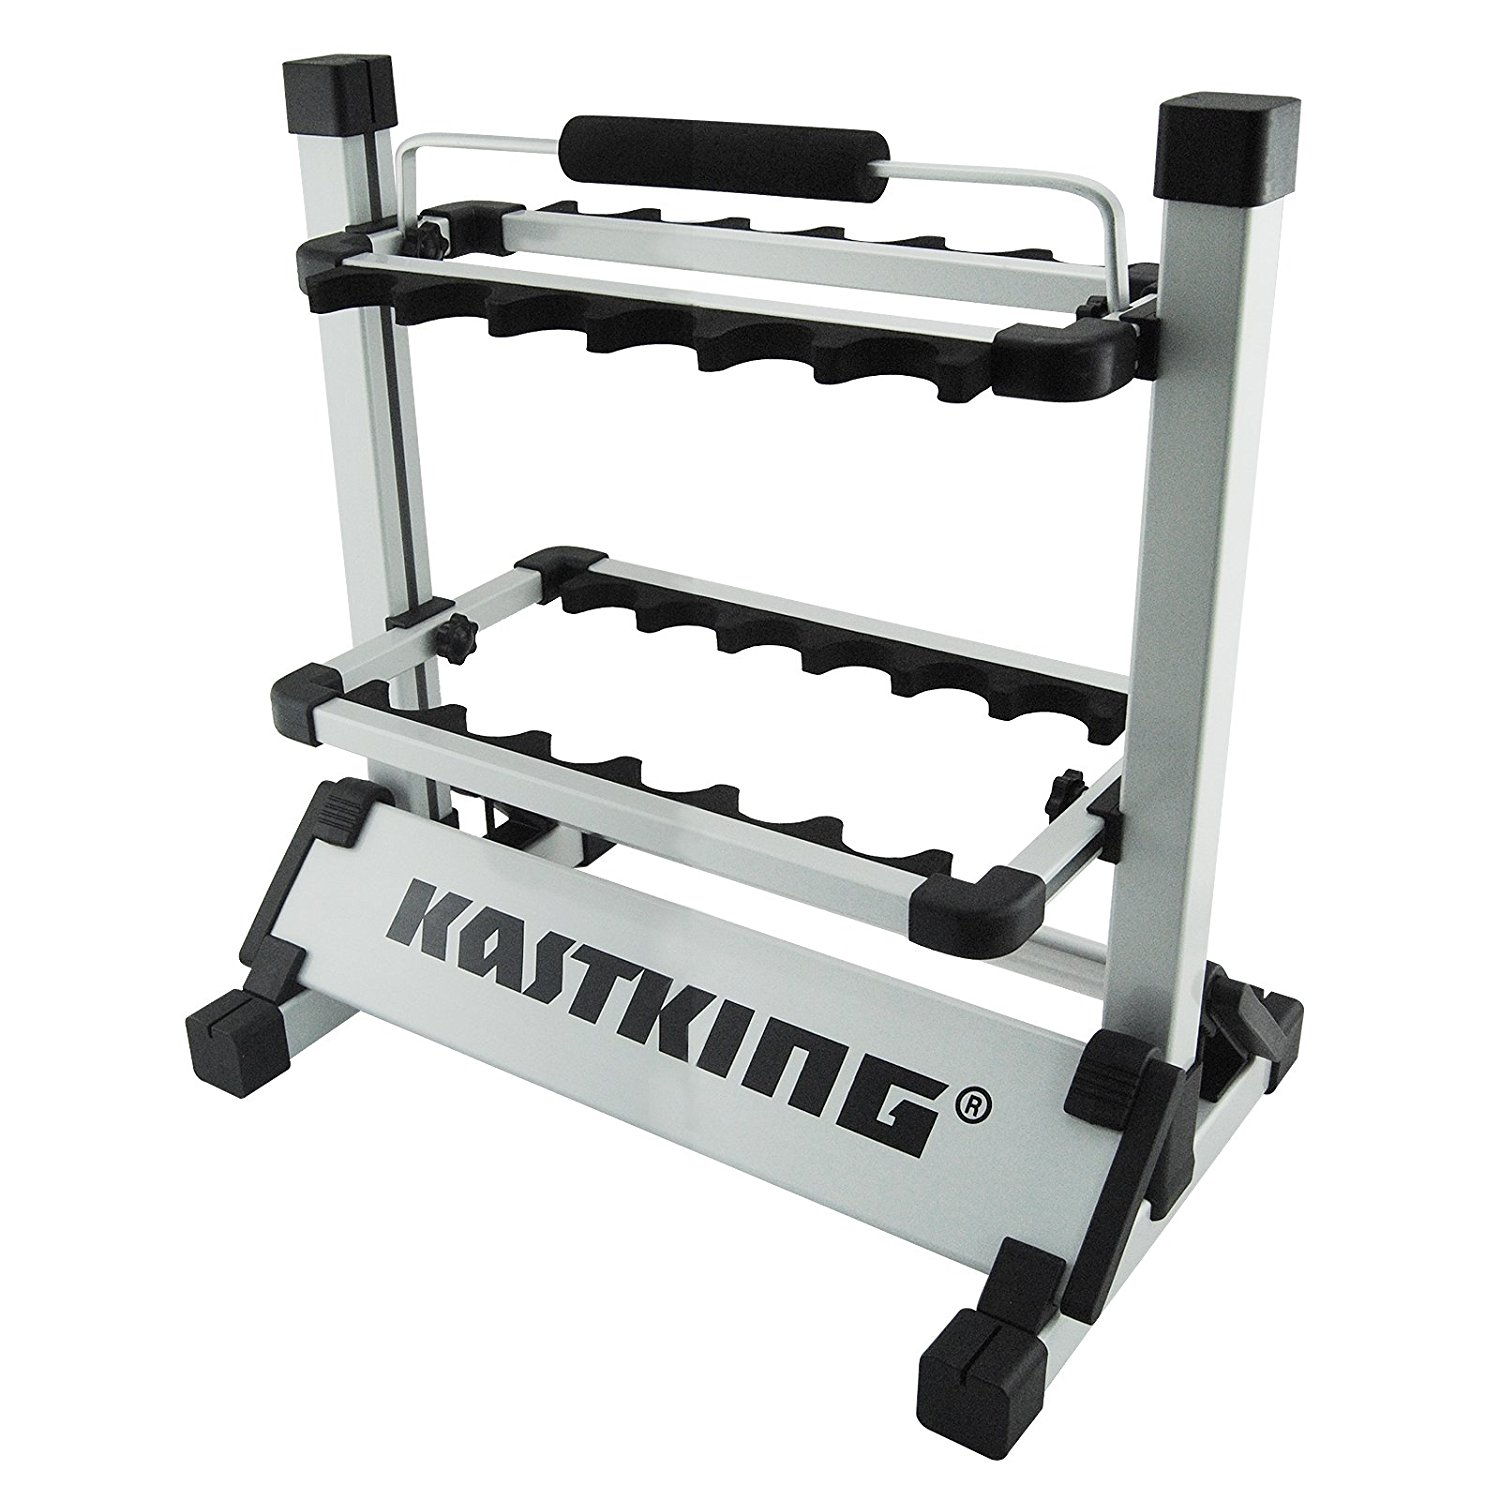 KastKing Rack 'em Up Fishing Rod Holder Portable Aluminum...